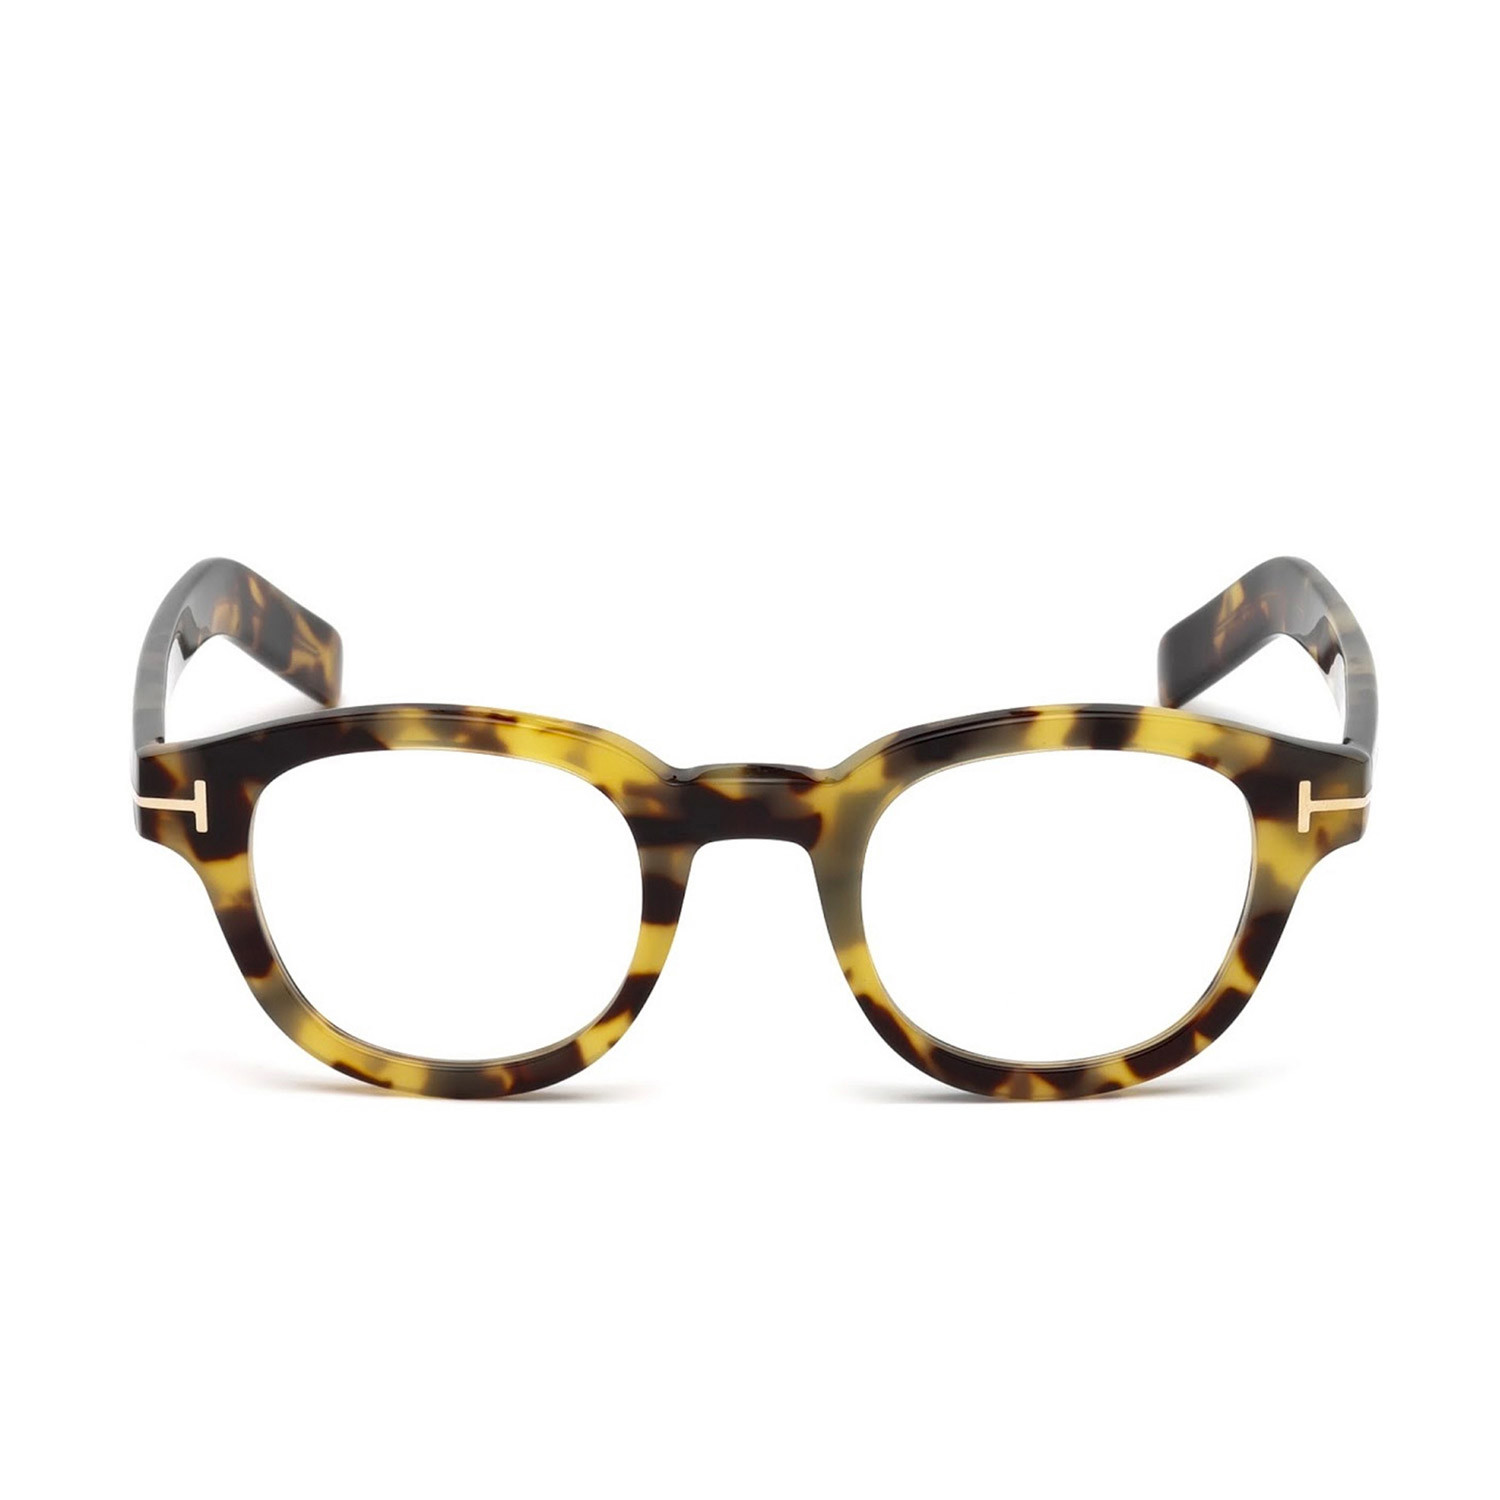 bad0502f9d 4c36cecc1b2229017a548903e2beb938 medium · Tom Ford    Men s Thick Round  Eyeglasses    Light Havana